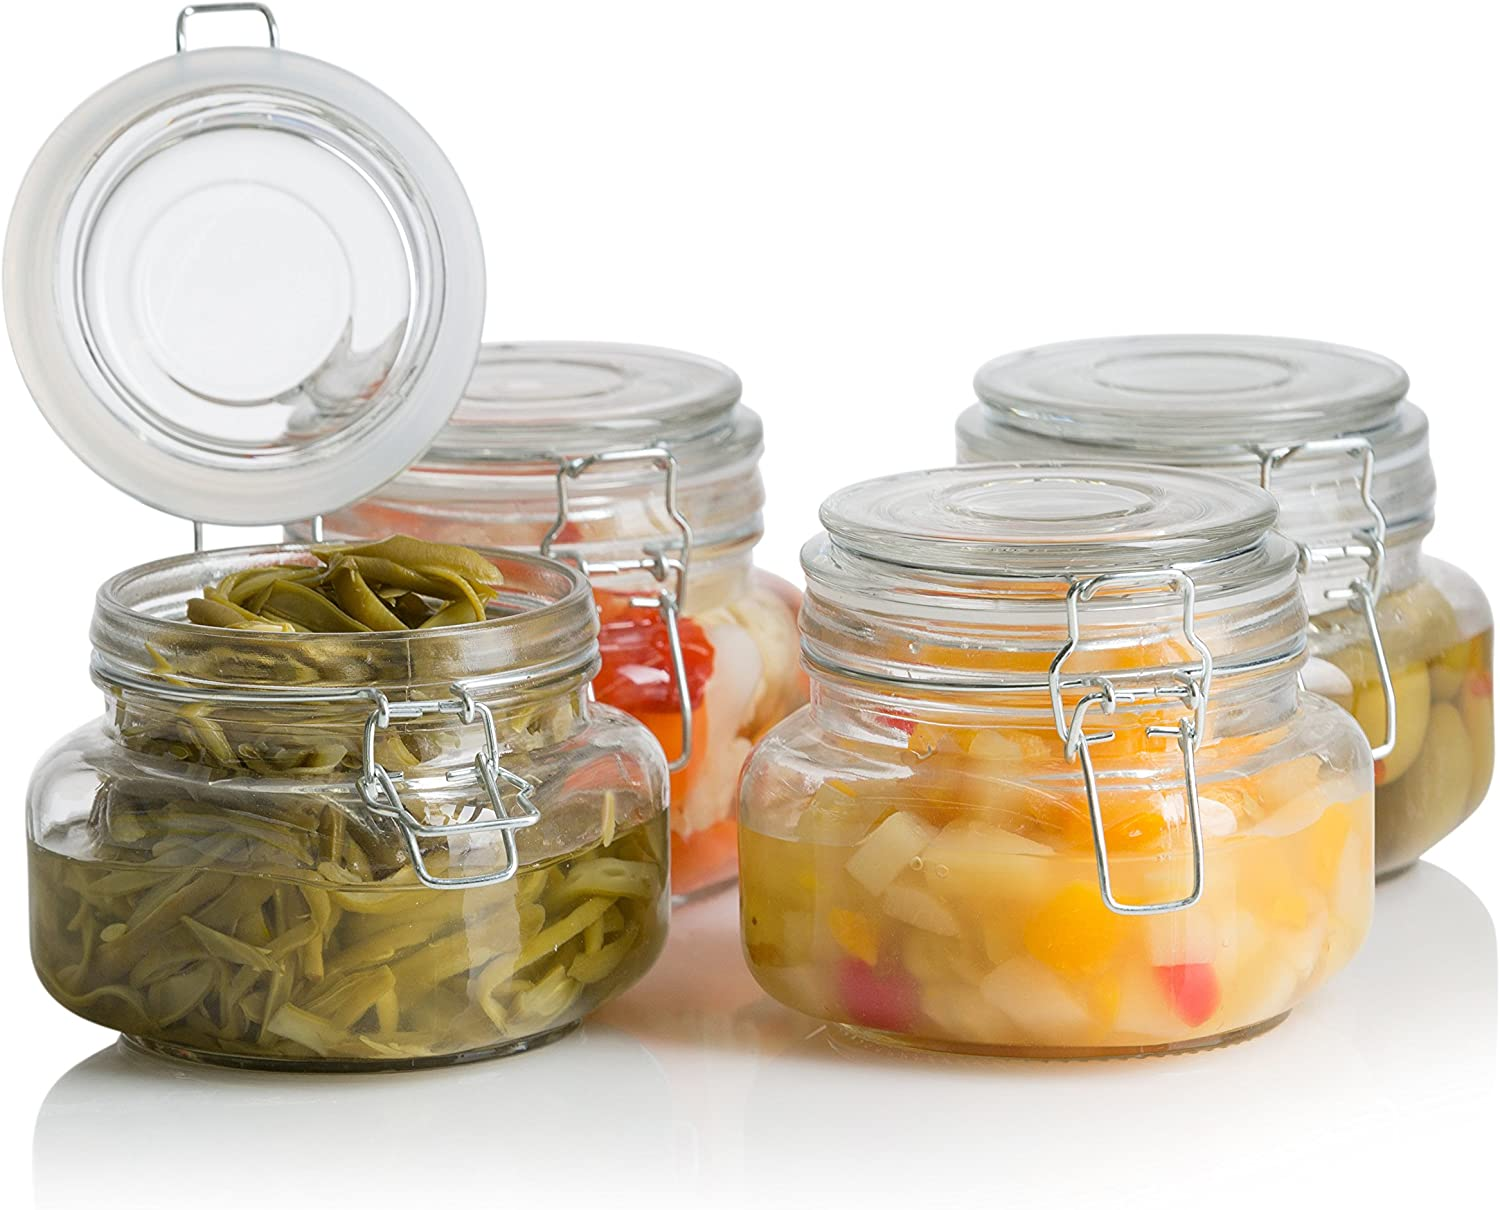 Klikel Square Glass Kitchen Storage Canister Jars - Crystal Clear Food Storage Jars With Clear Lid And Bail & Trigger Hermetic Seal - 16oz, (set of 4)